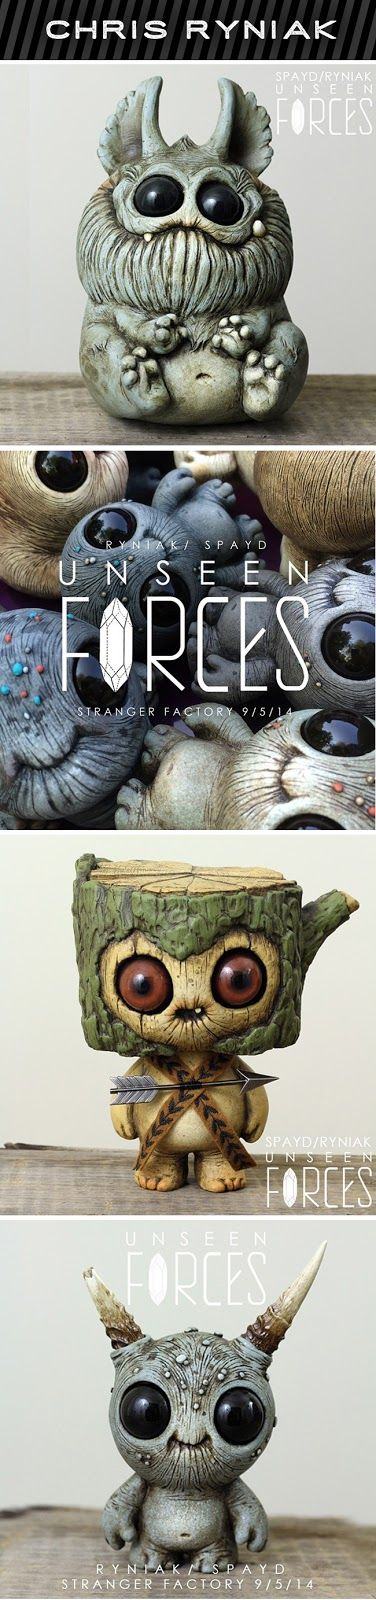 Unseen Forces Art opening tonight. #chrisryniak #creatures #art